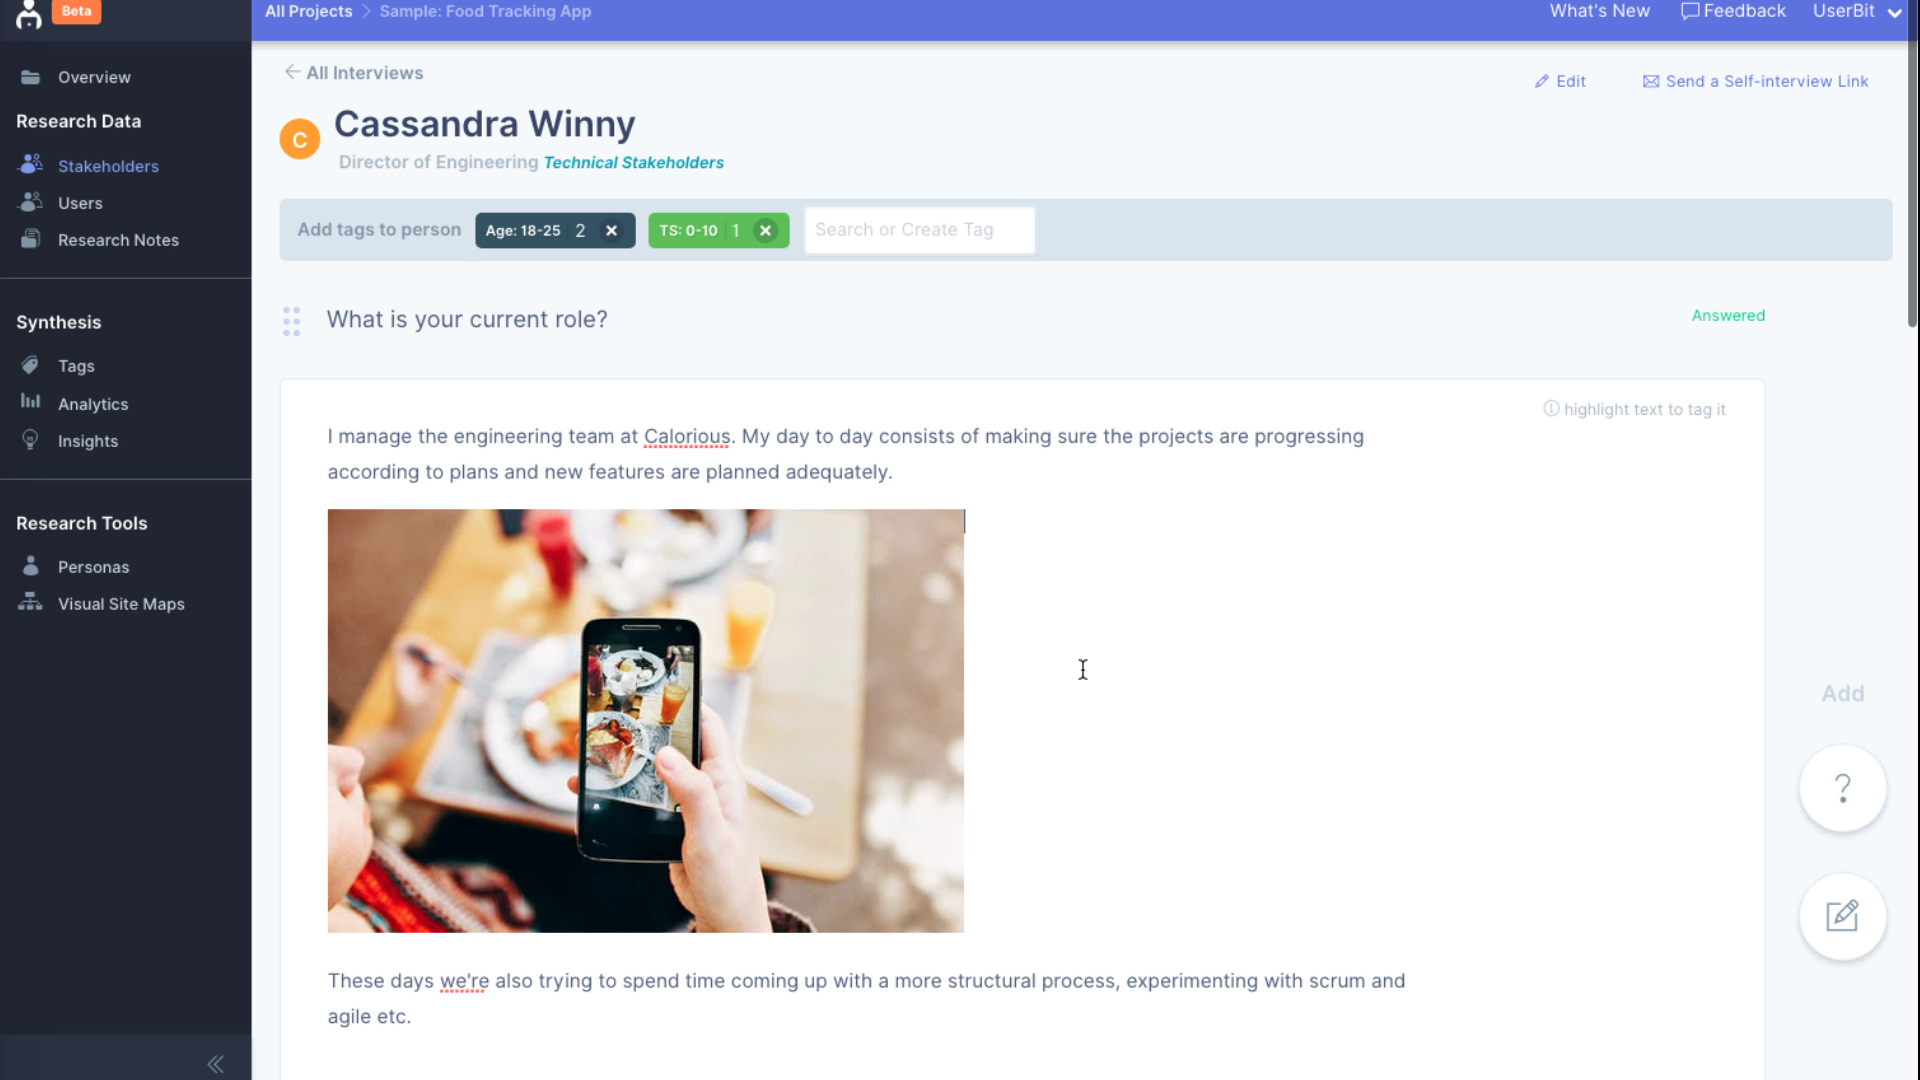 Add images to user interviews and notes!